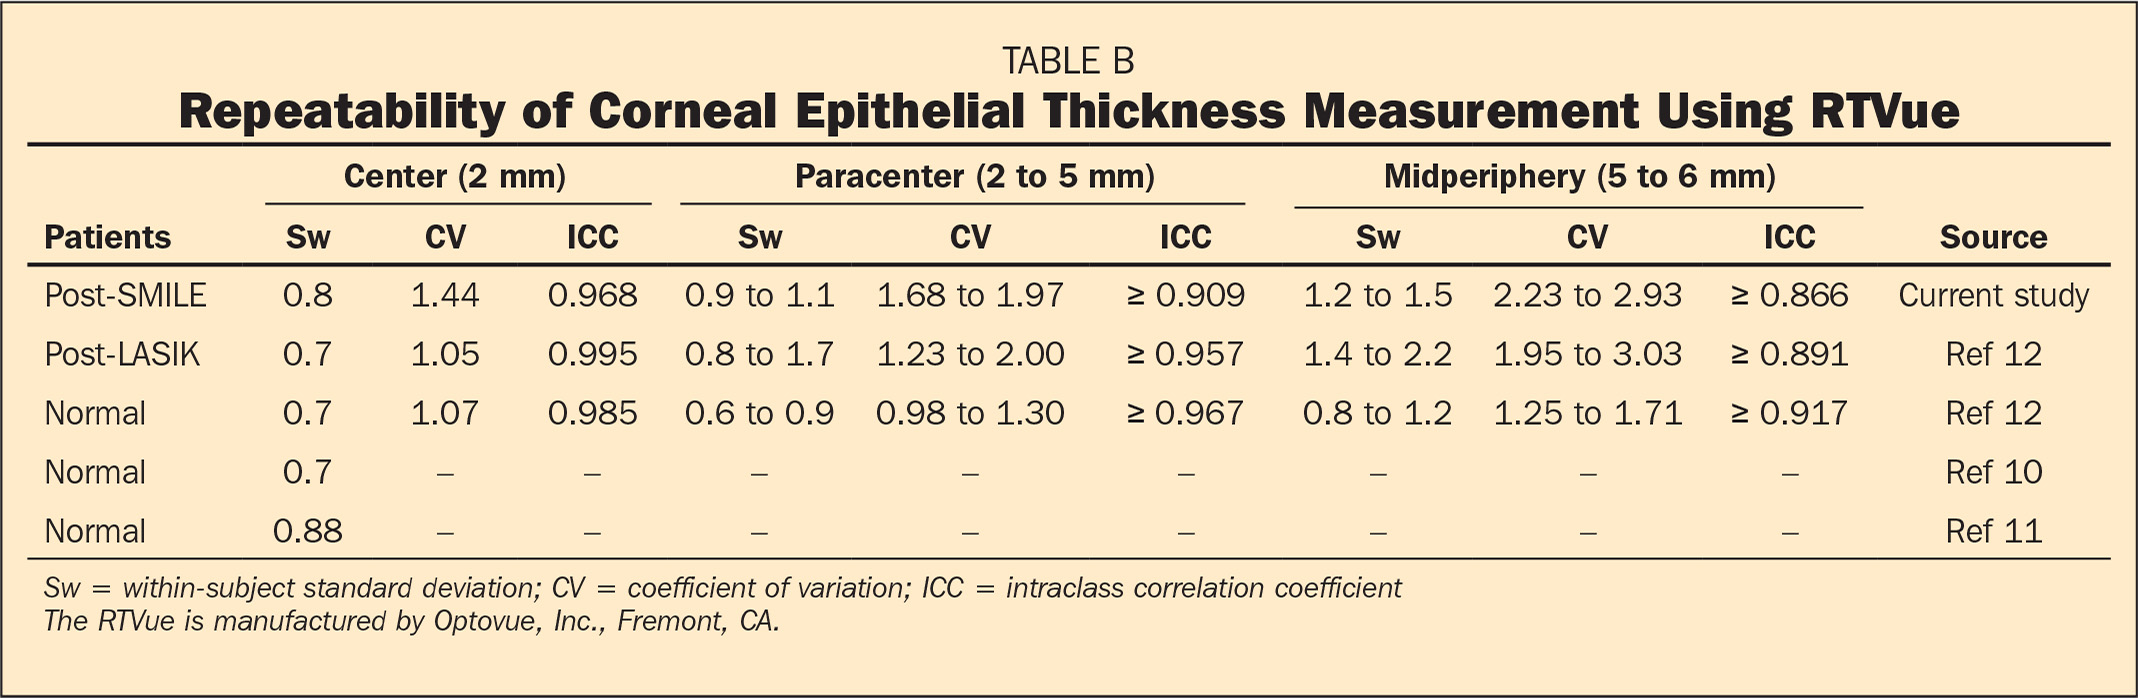 Repeatability of Corneal Epithelial Thickness Measurement Using RTVue